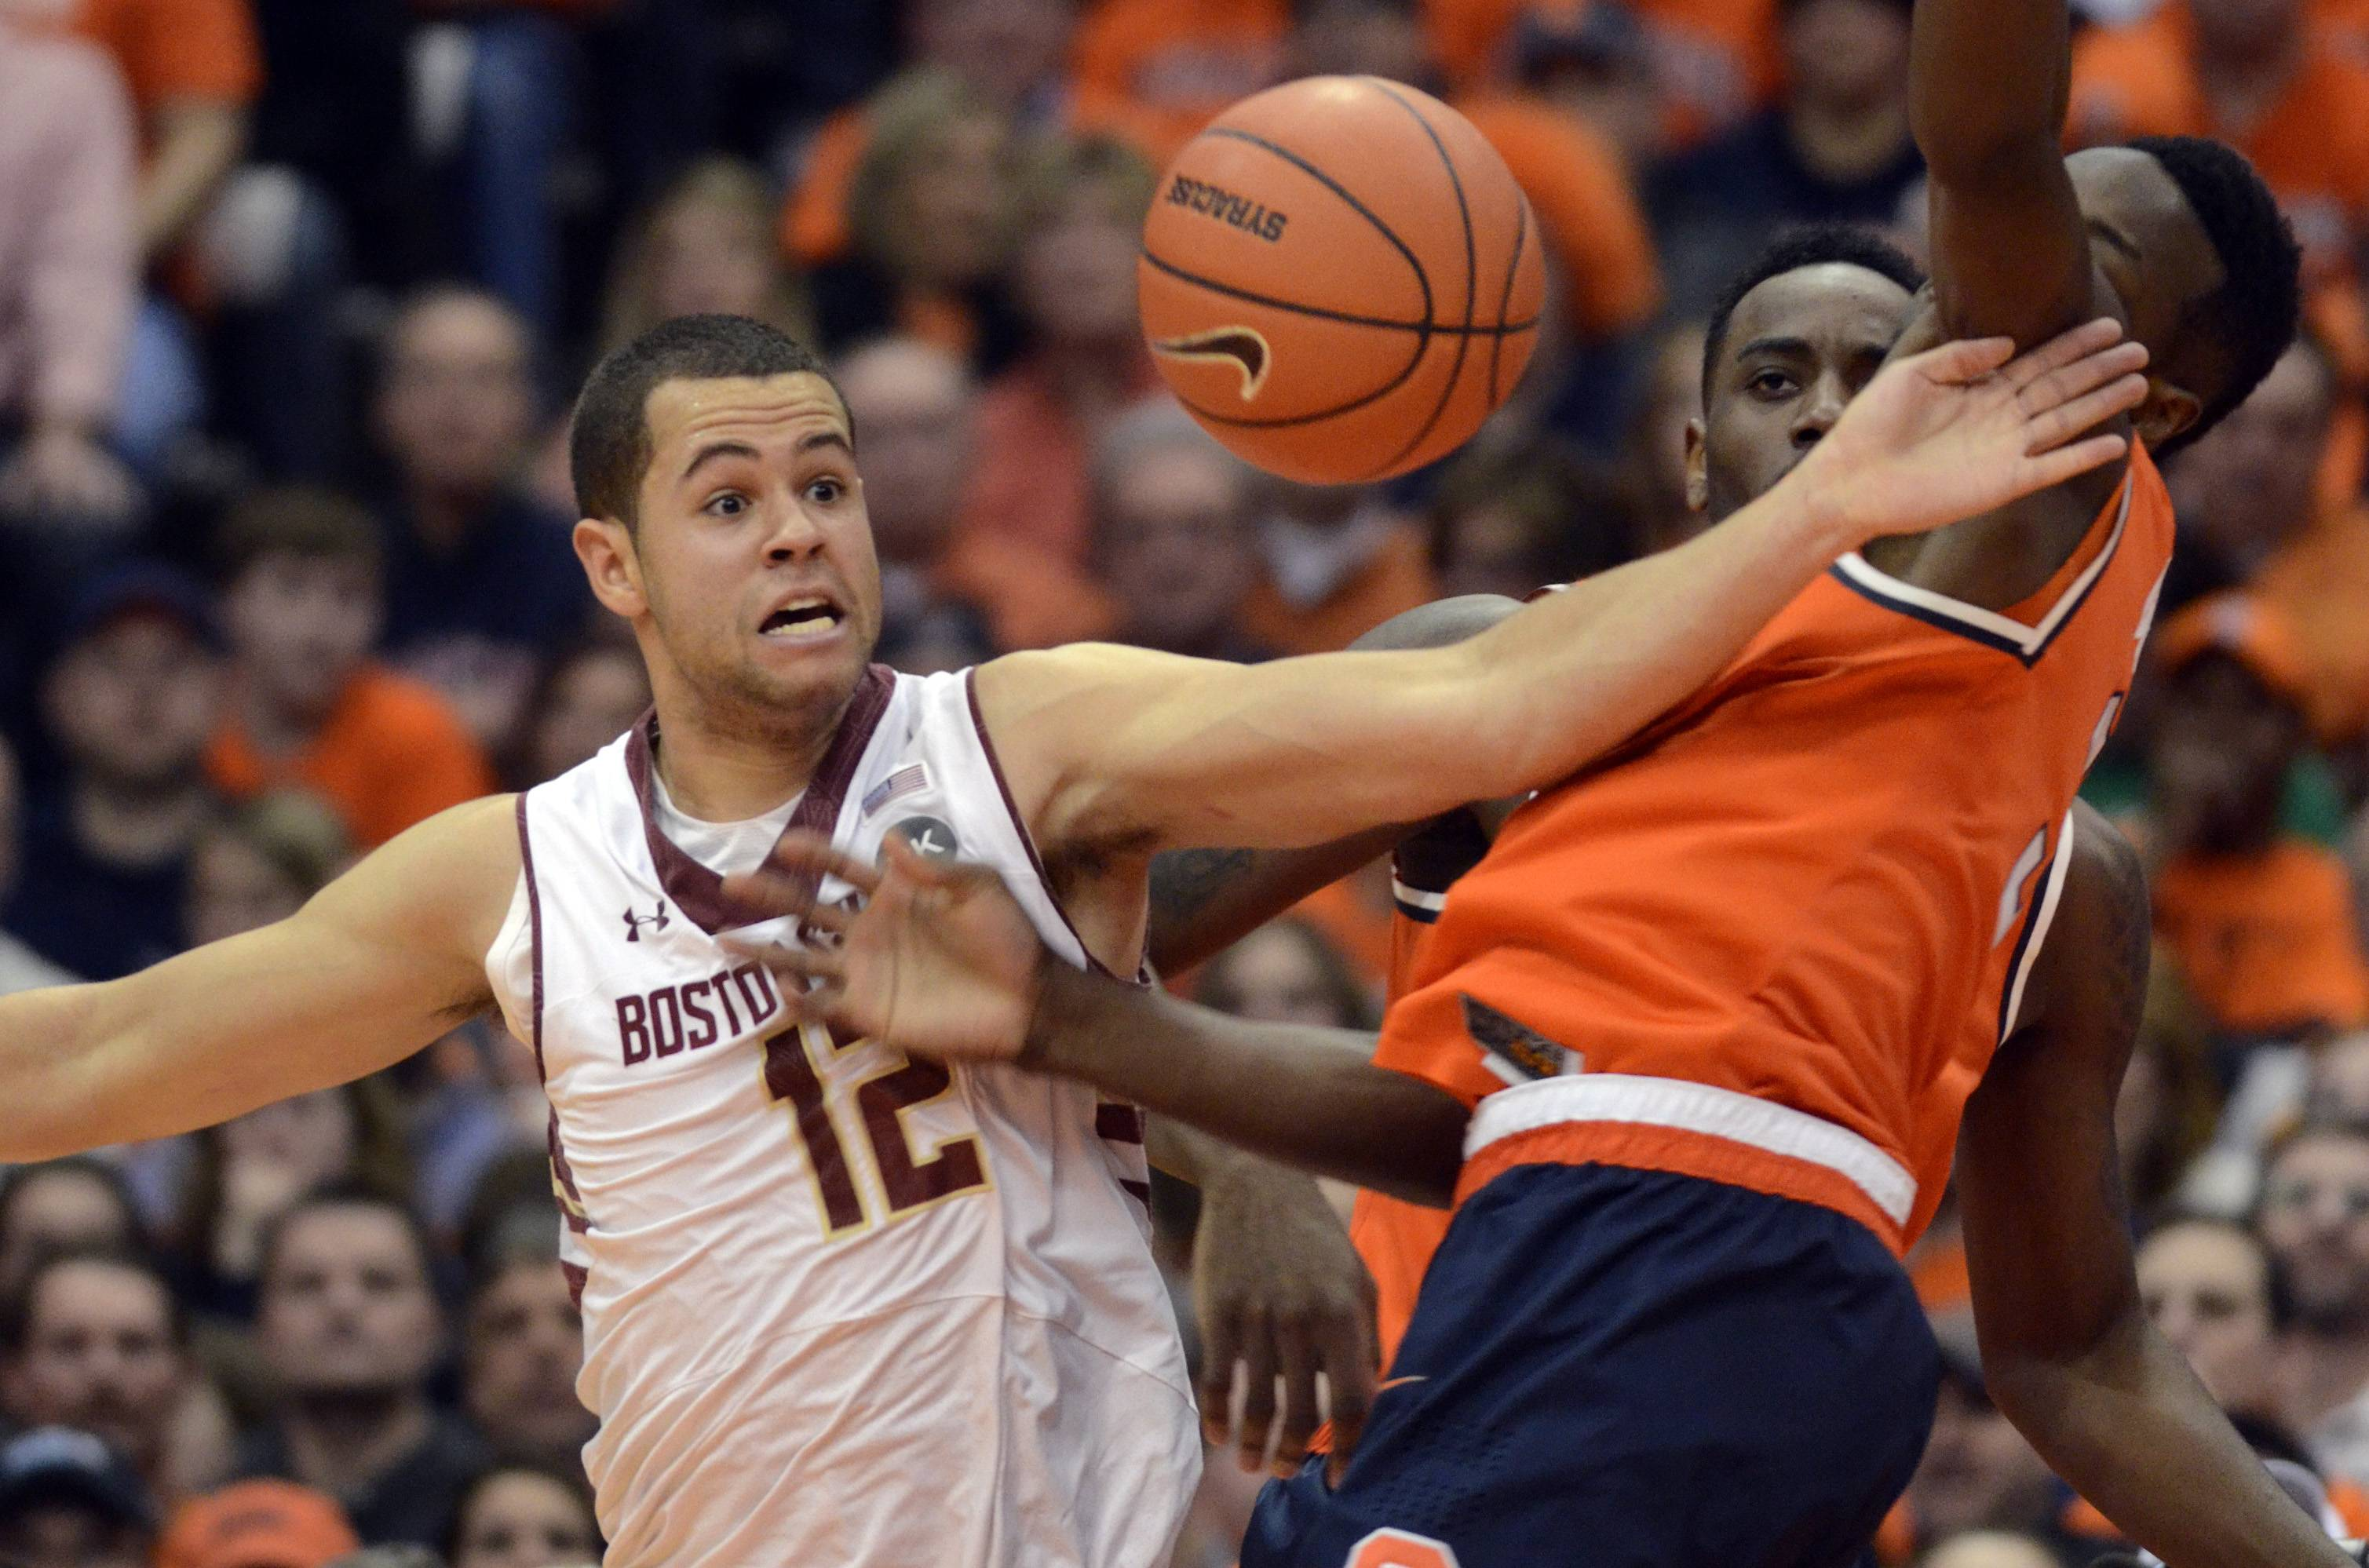 Boston College's Ryan Anderson, left, battles Syracuse's Jerami Grant for a loose ball during the first half of an NCAA college basketball game in Syracuse, N.Y., Wednesday, Feb. 19, 2014.